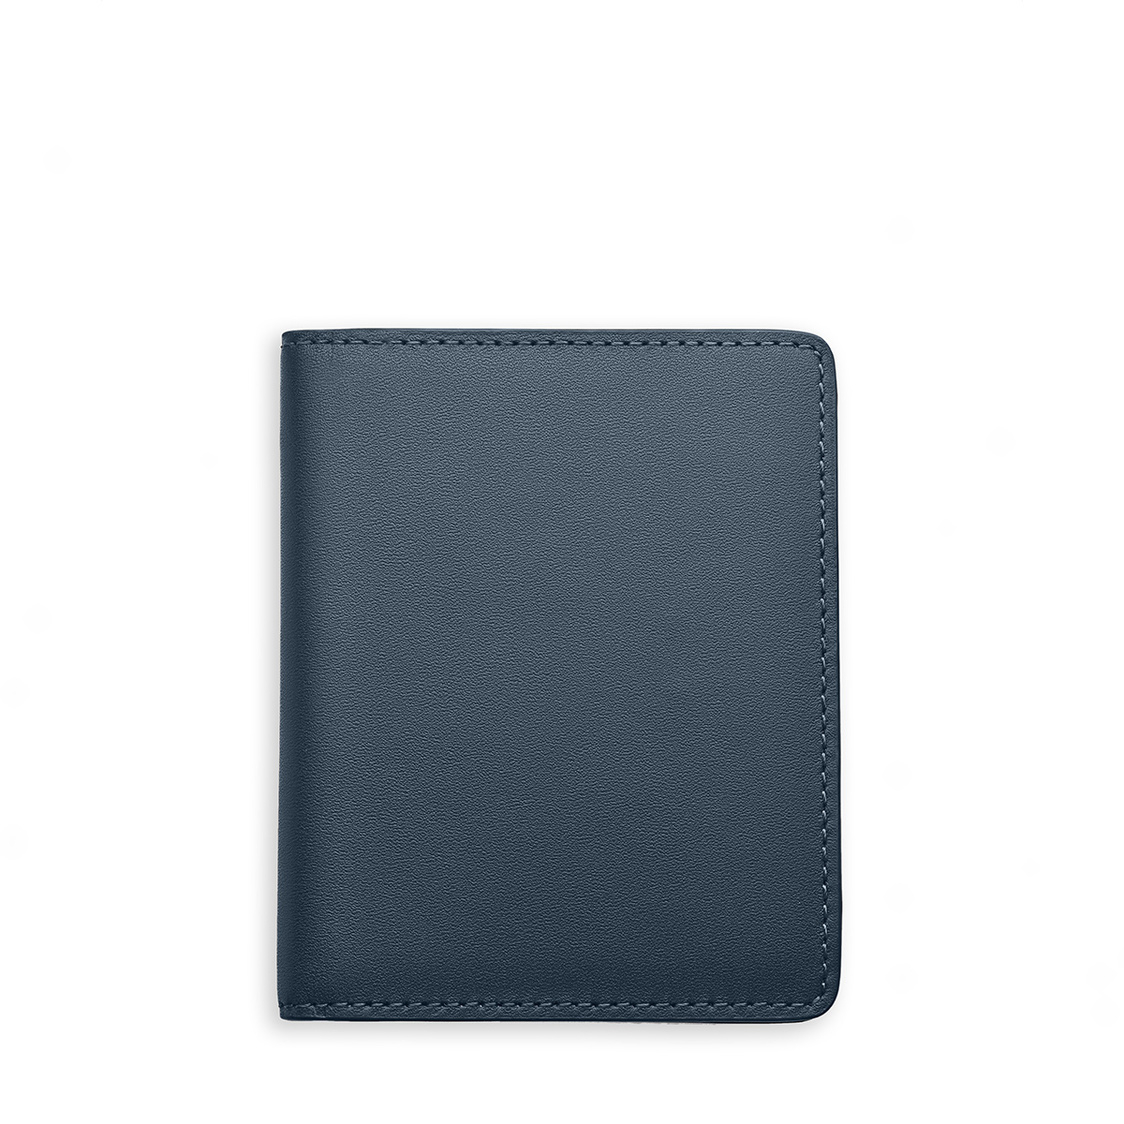 Kyl Wallet - Navy Leather